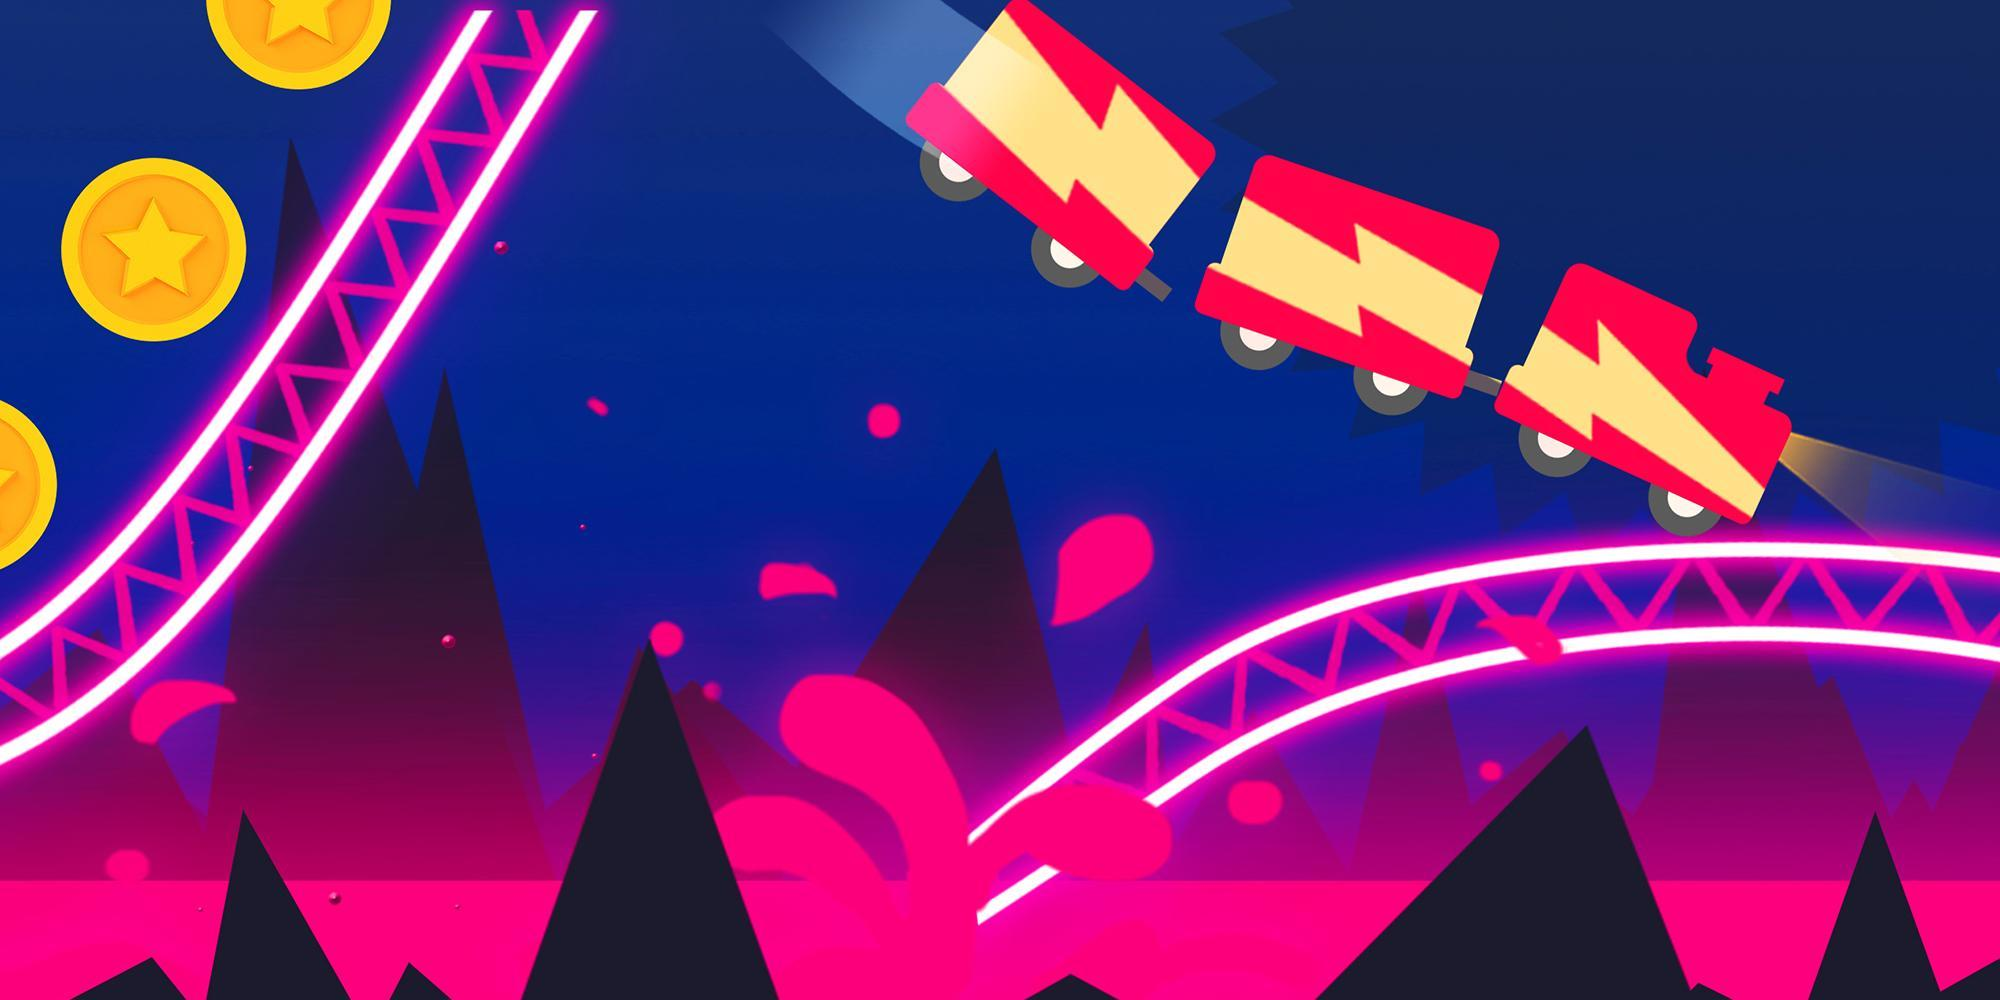 Rollercoaster Dash for Android - APK Download